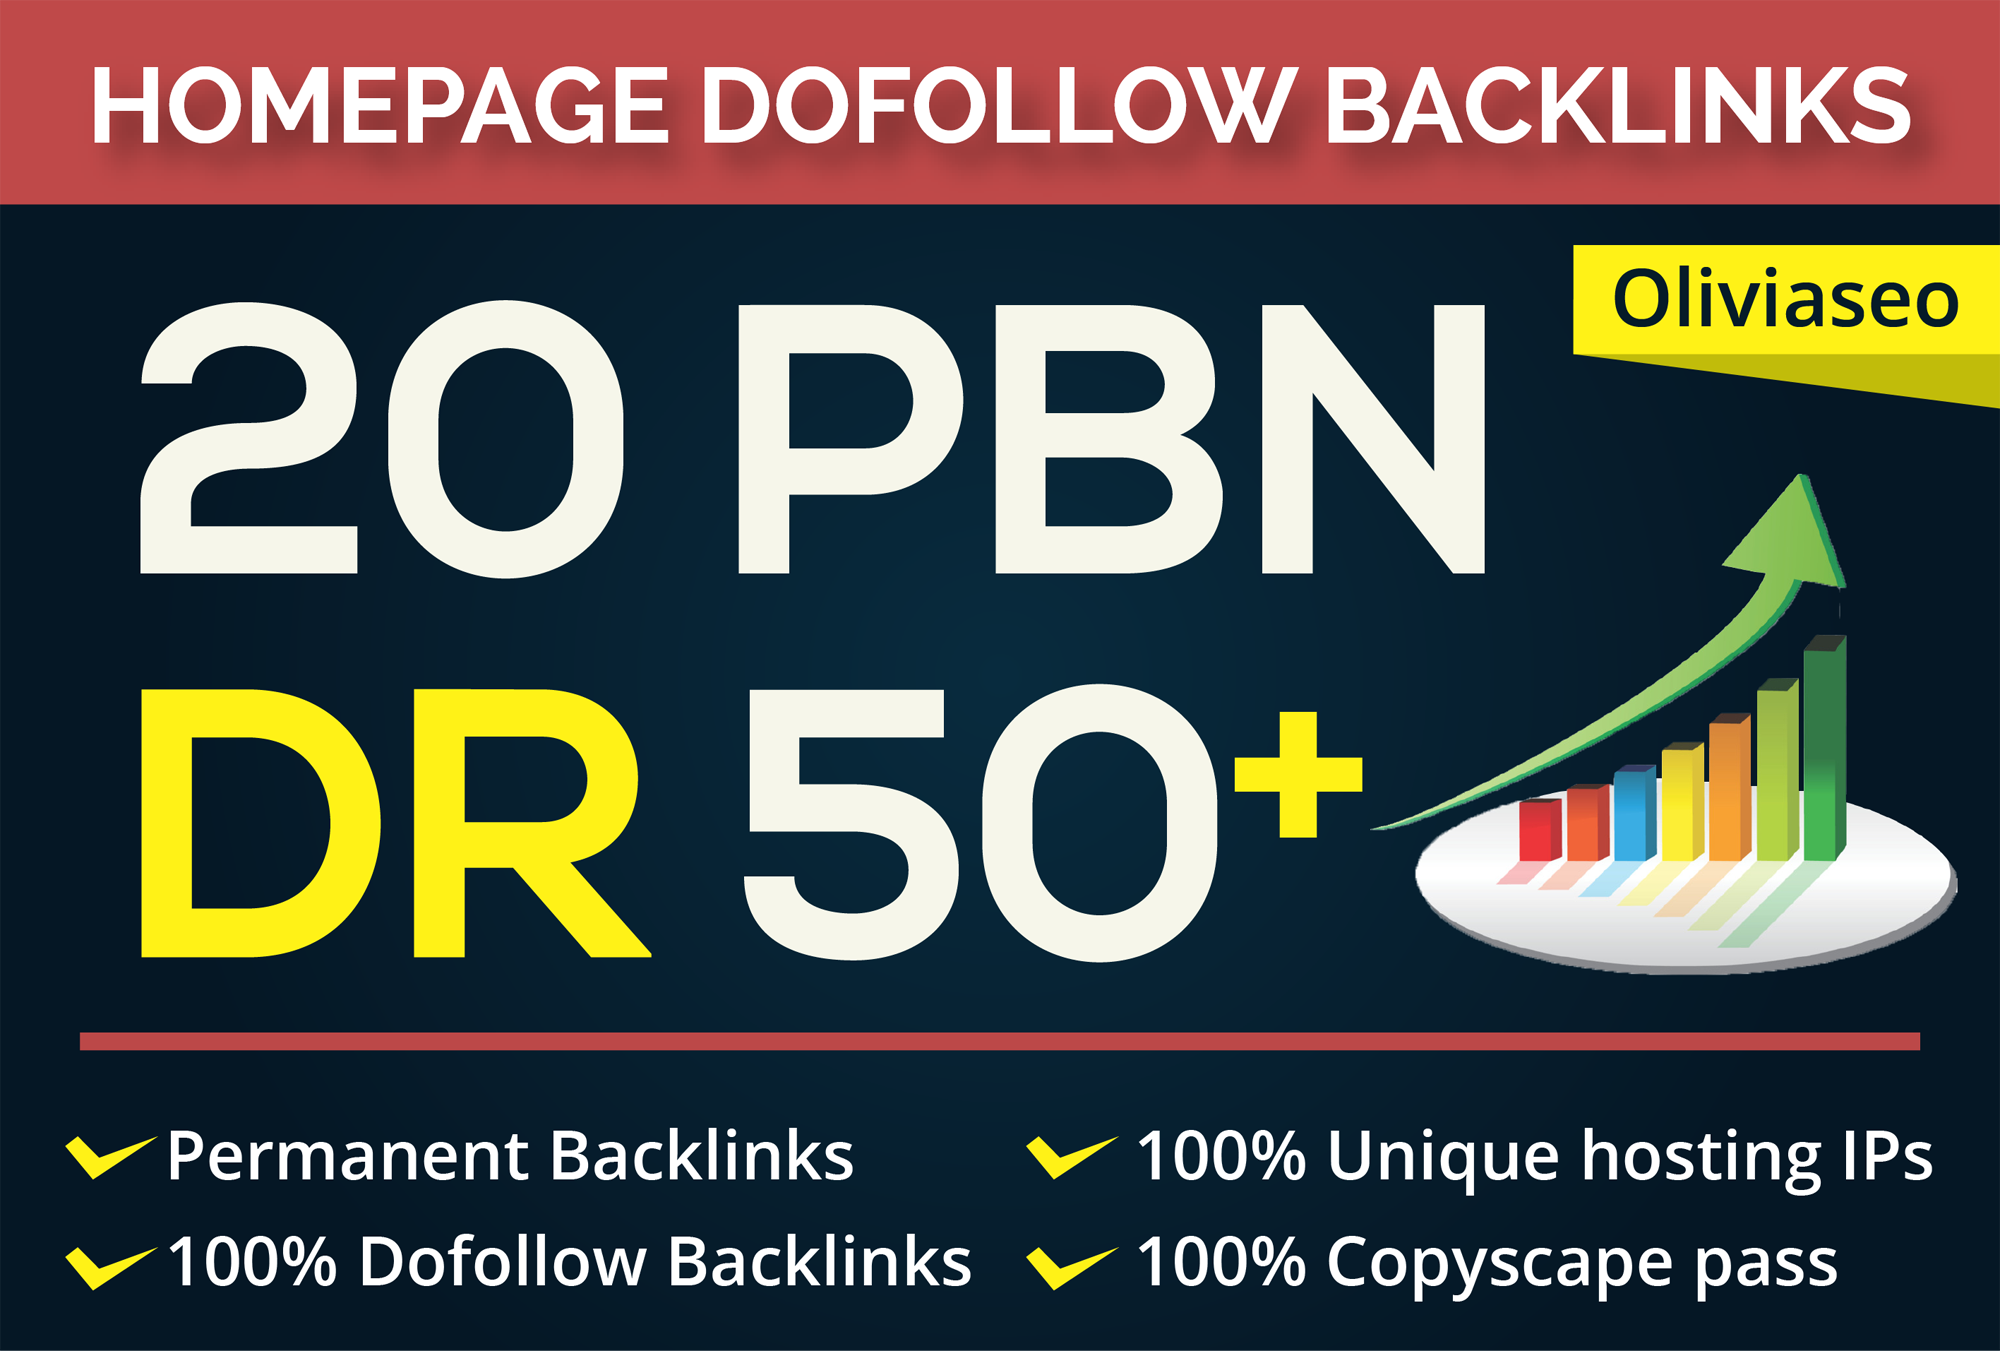 Make DR 50 to 70 Permanent Homepage PBN Backlinks